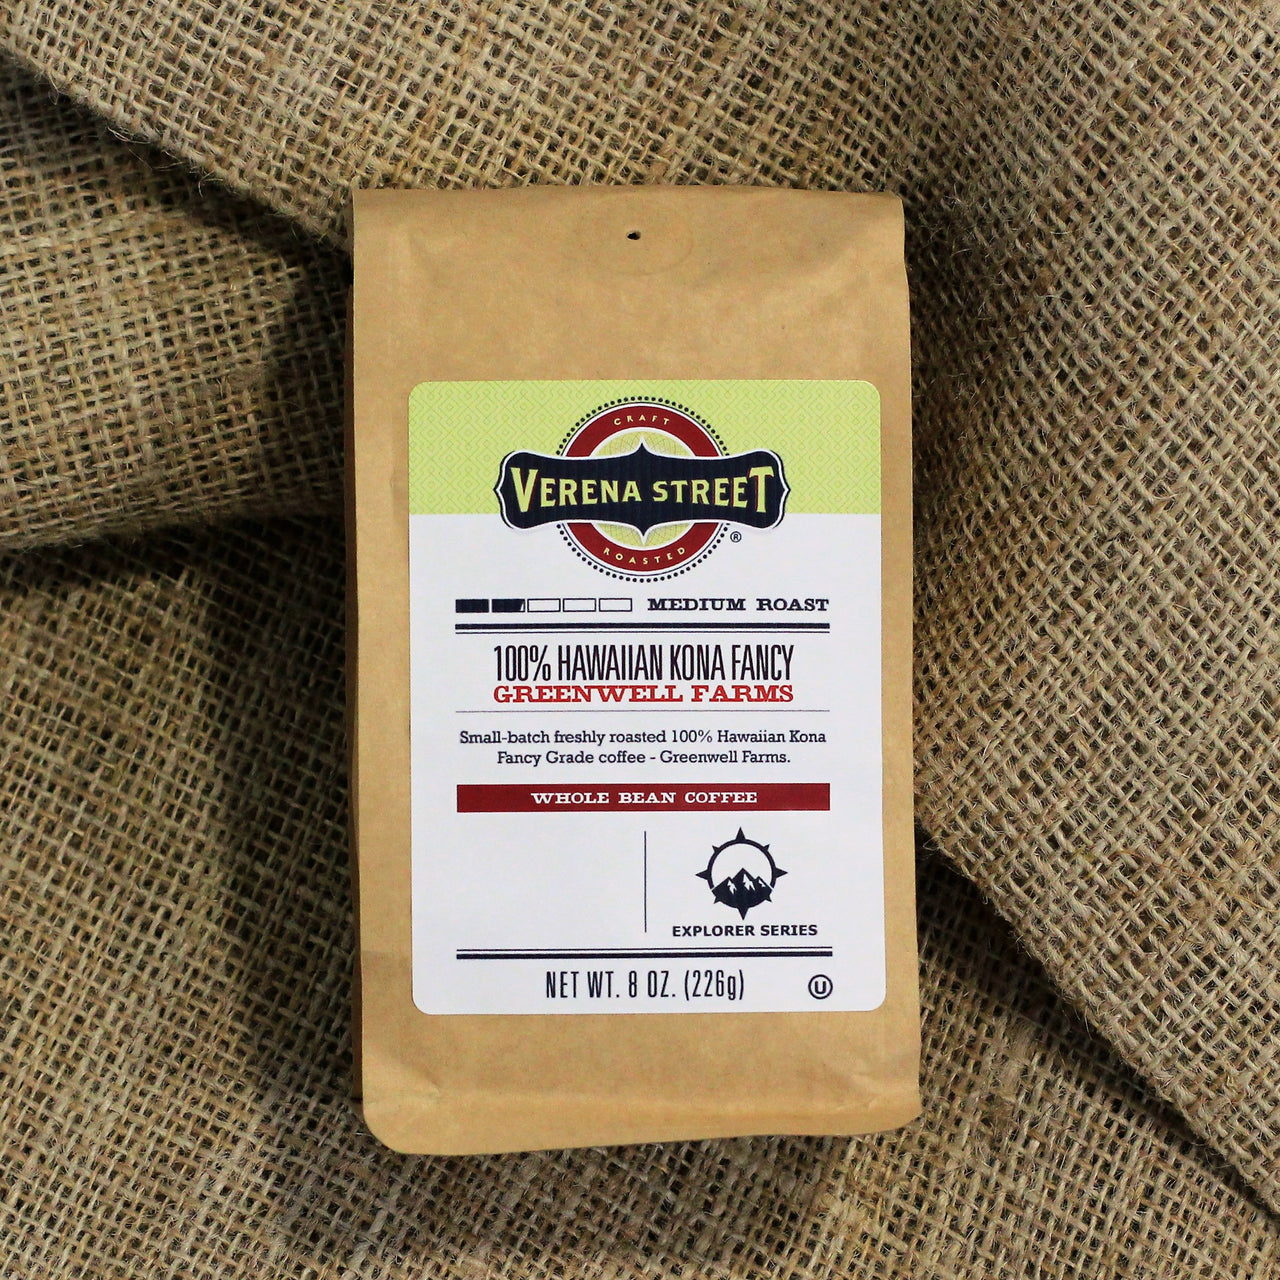 100% Hawaiian Kona Fancy- Greenwell Farms, whole bean coffee - Verena Street Coffee Co.